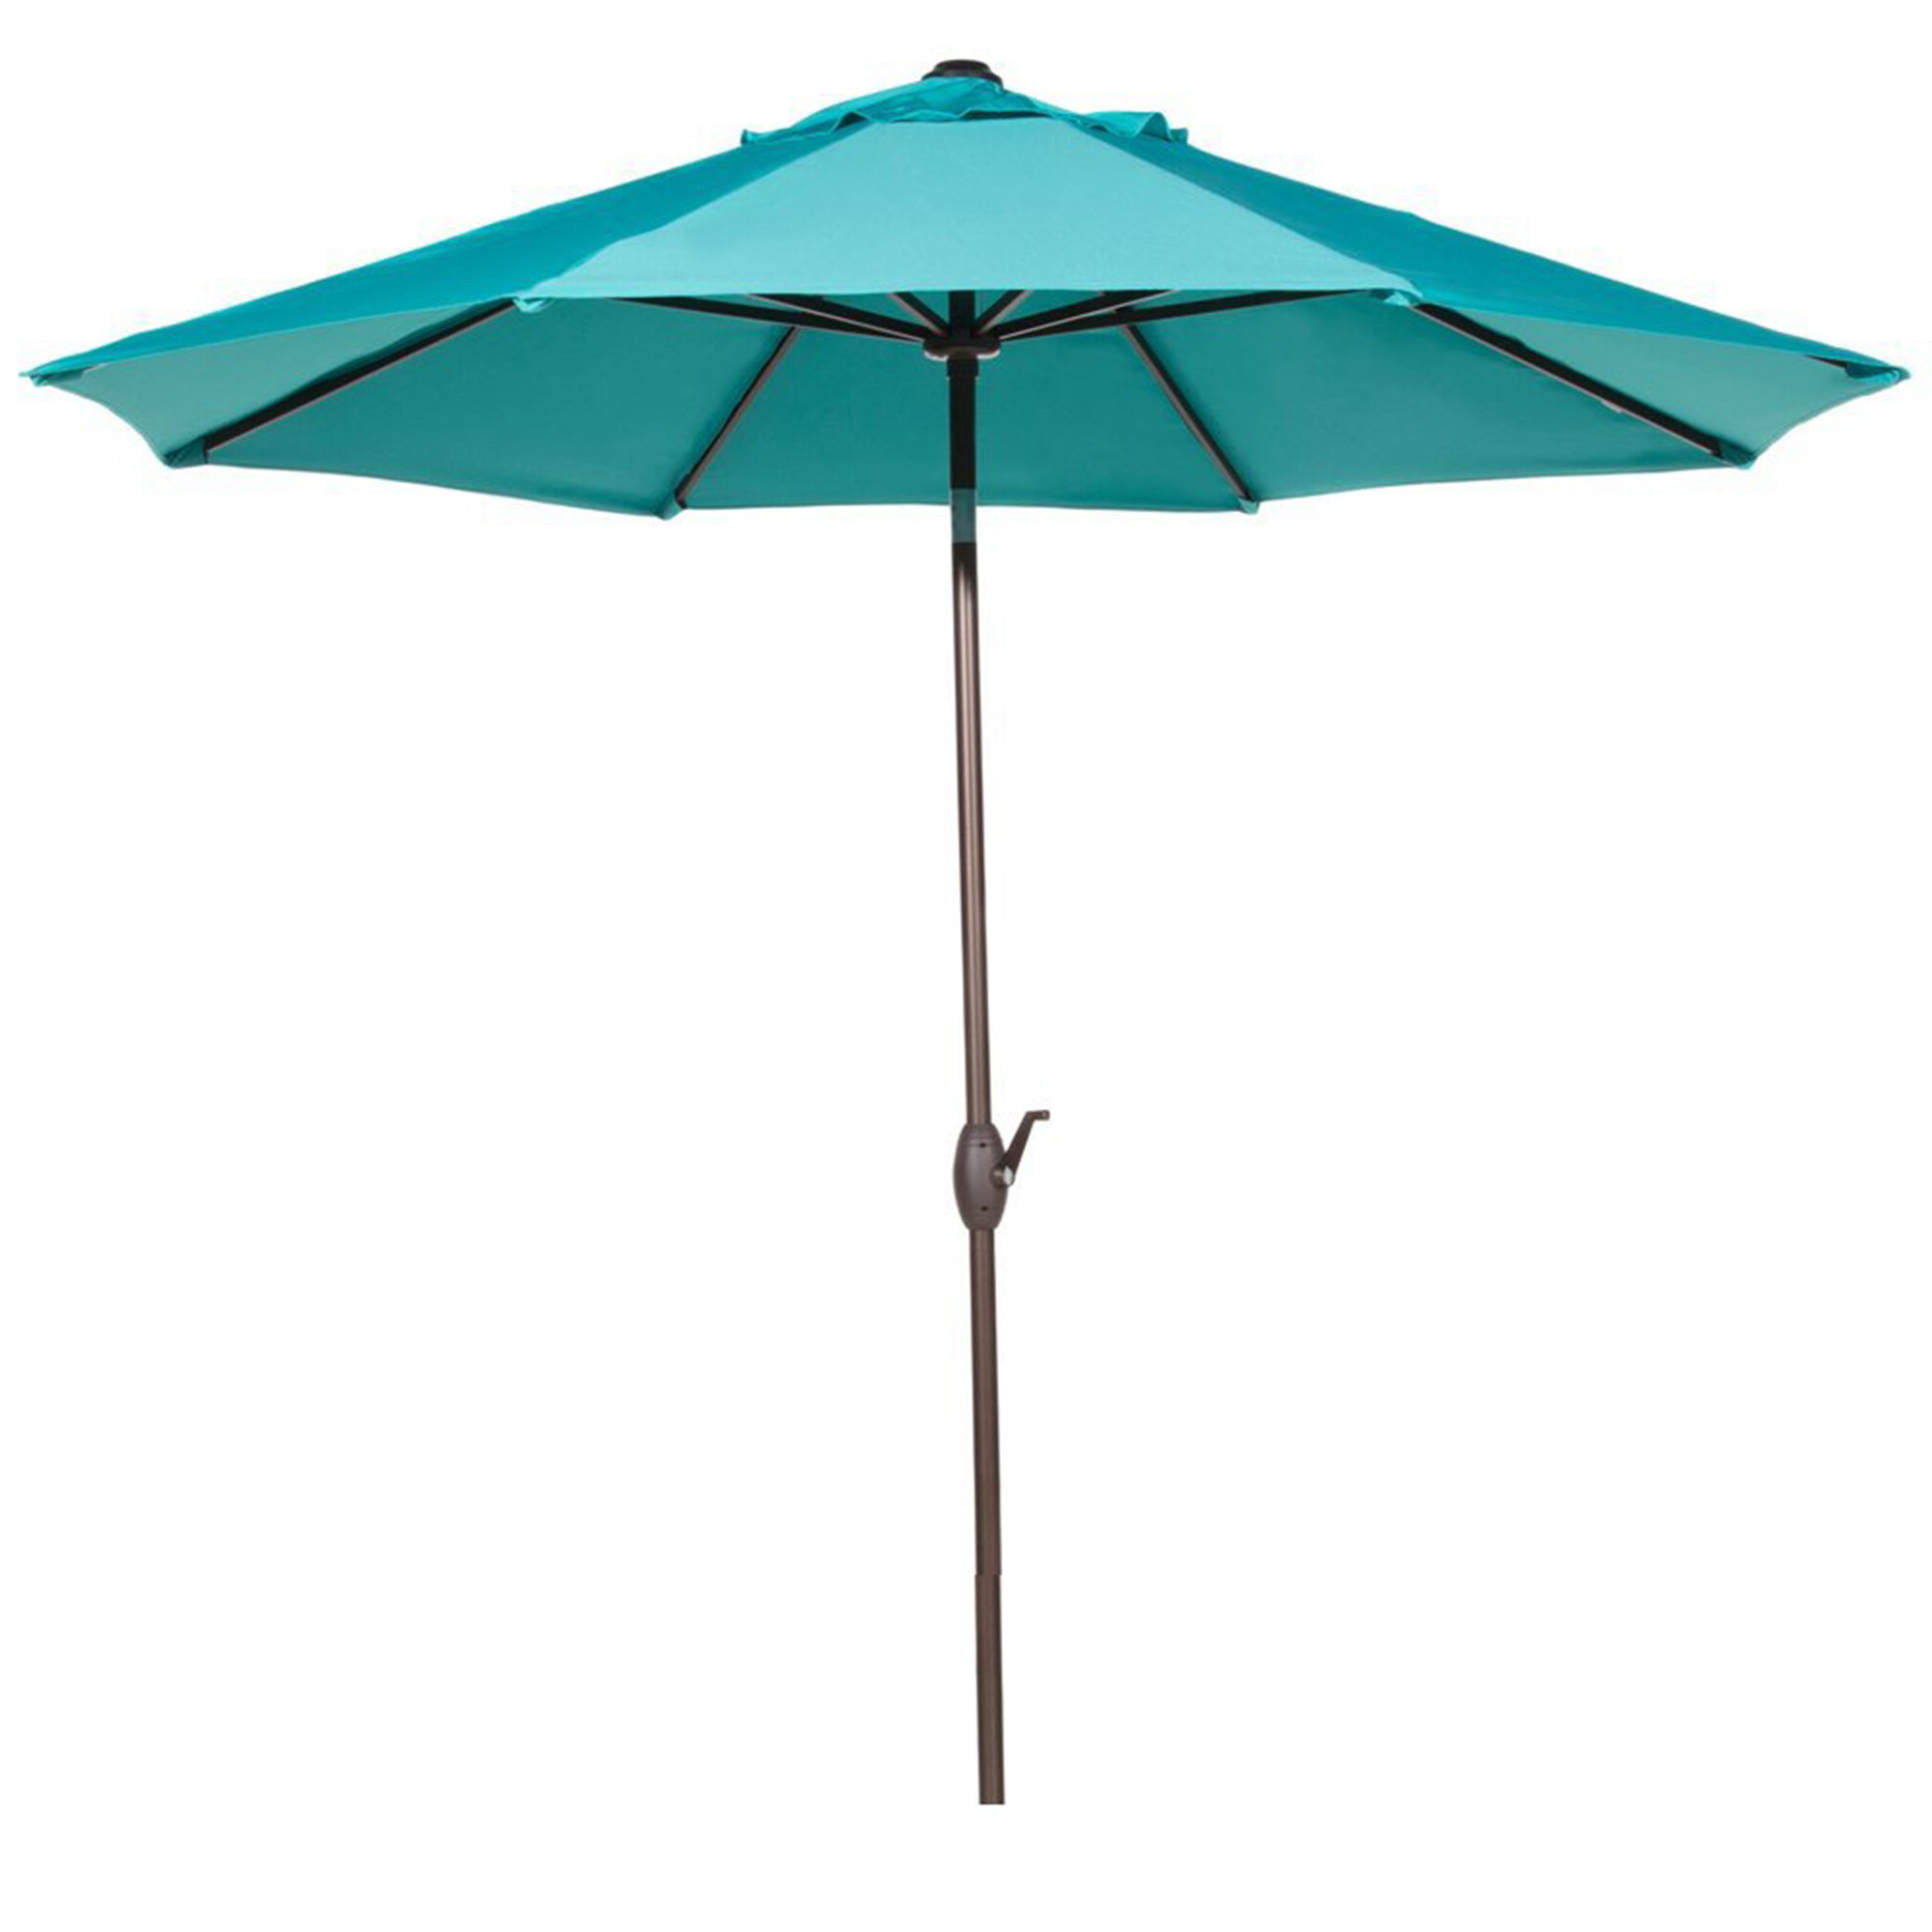 Preferred Delaplaine Market Umbrellas Intended For Winchester Zipcode Design 9' Market Umbrella (View 12 of 20)